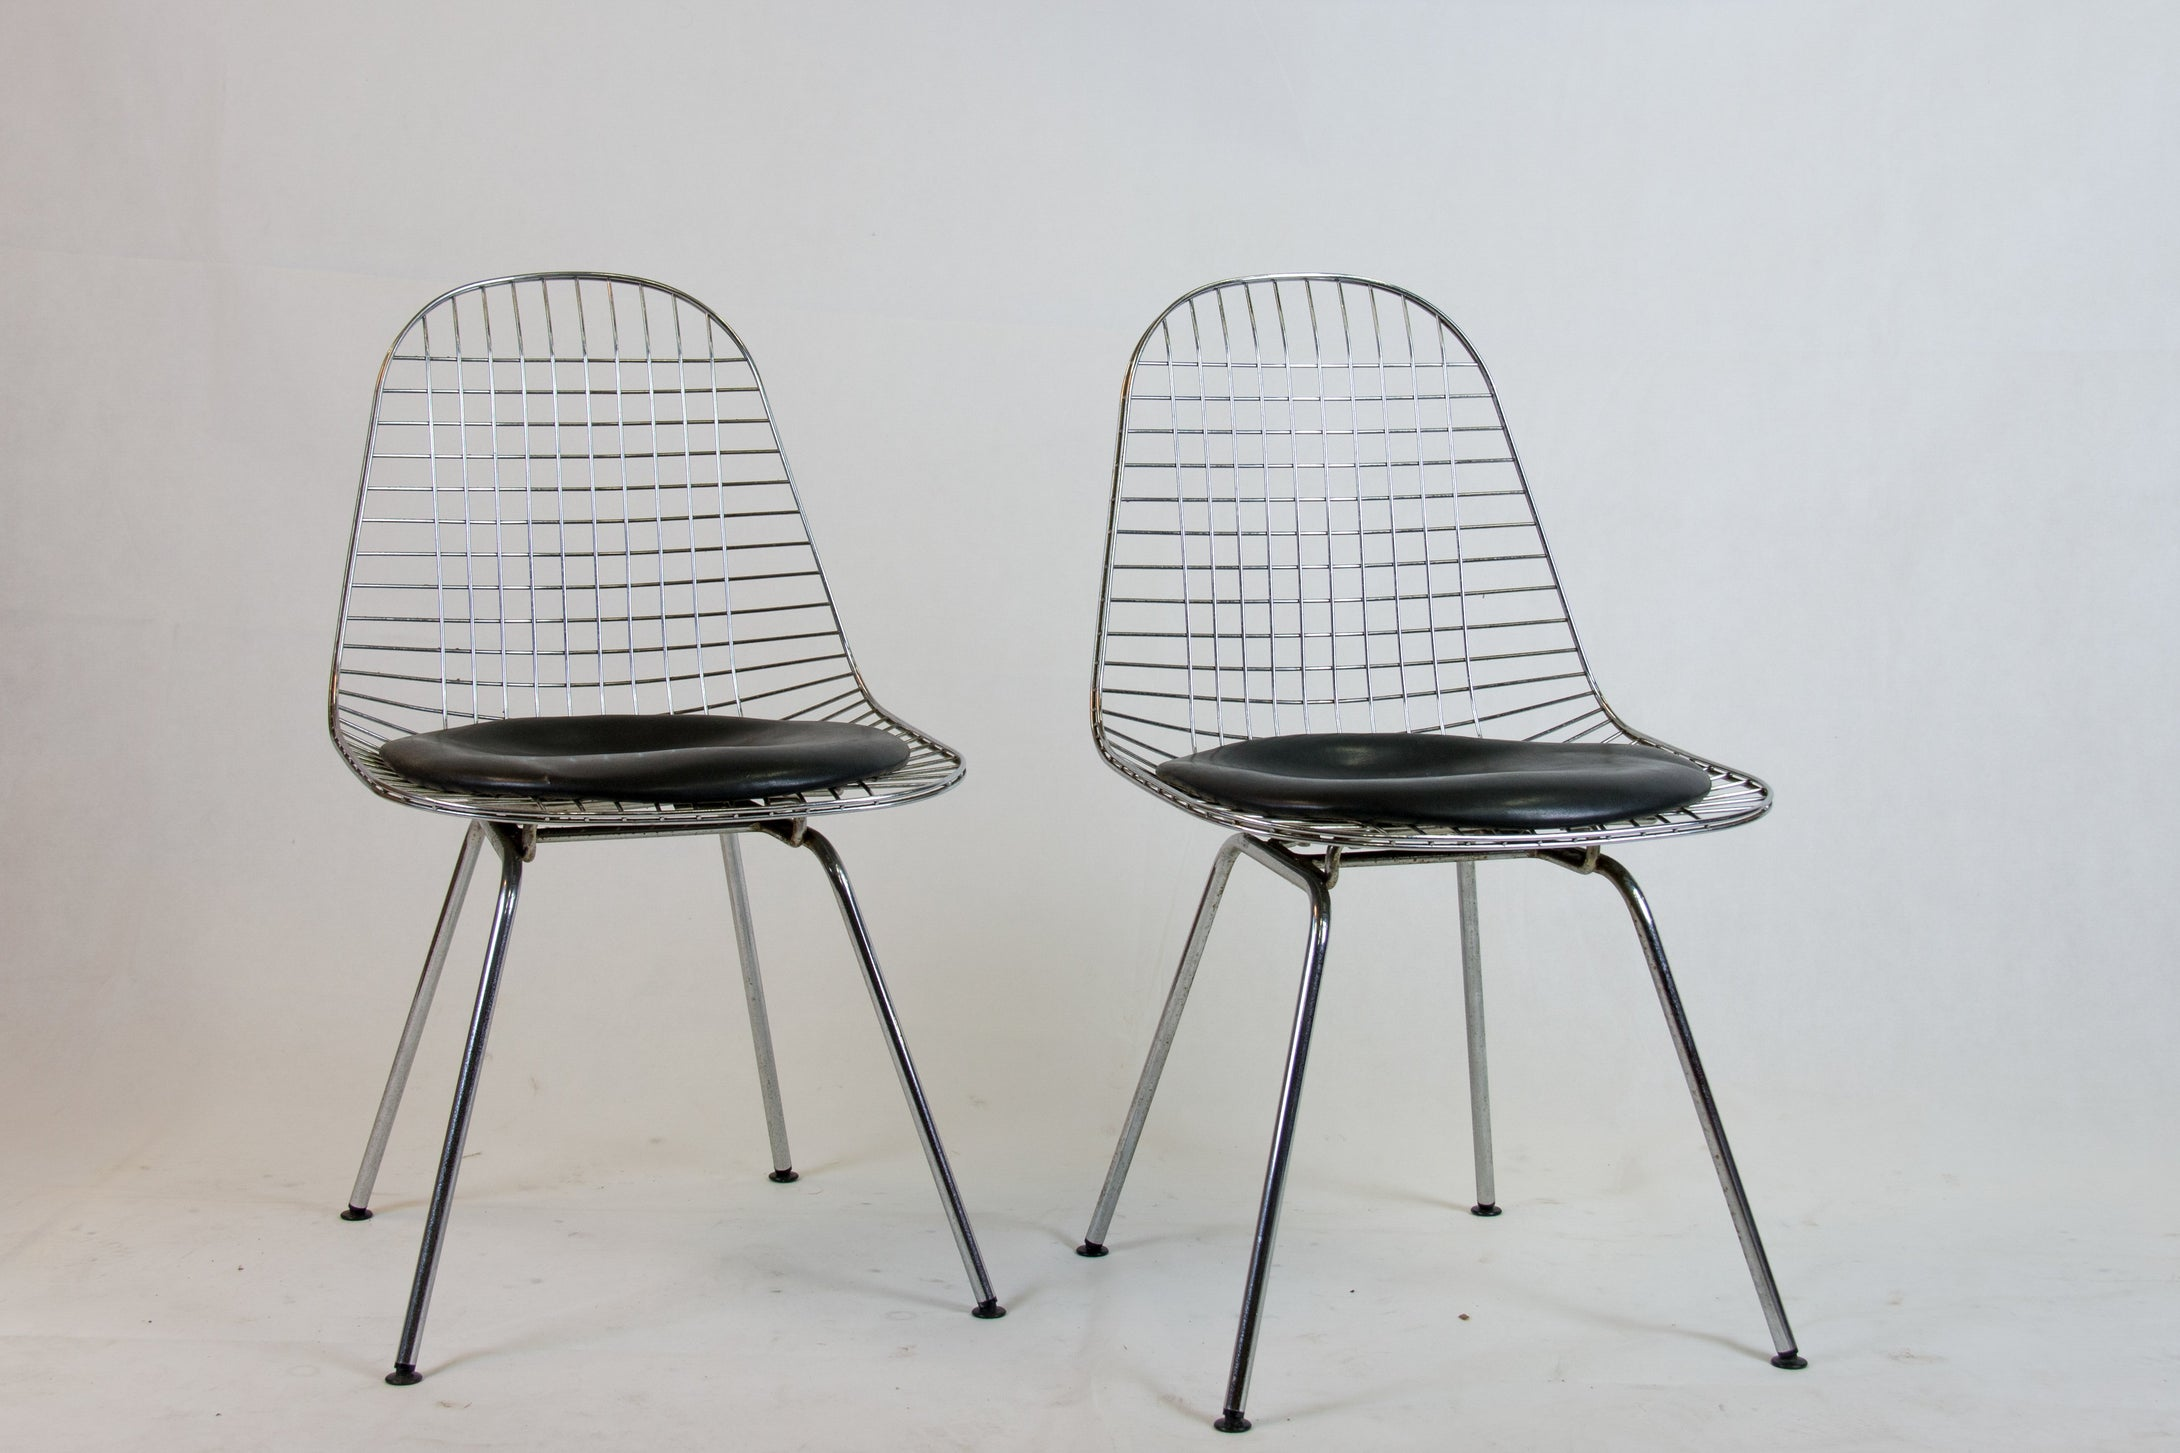 2 DKR wire chairs by Charles Eames for Herman Miller